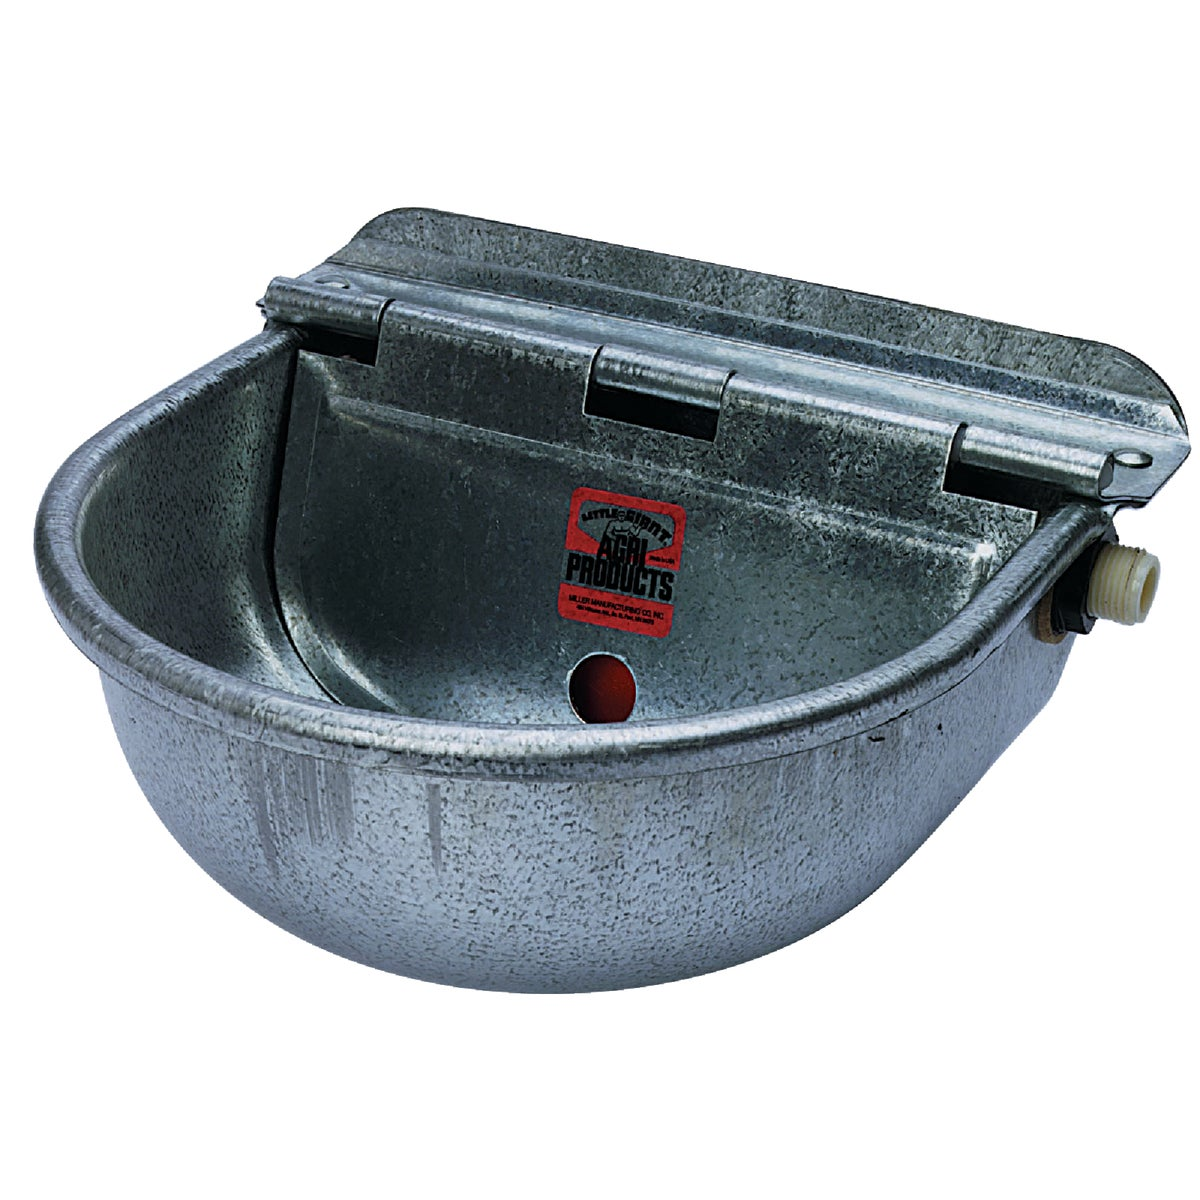 GALV AUTO STOCK WATERER - 88SW by Miller Manufacturing